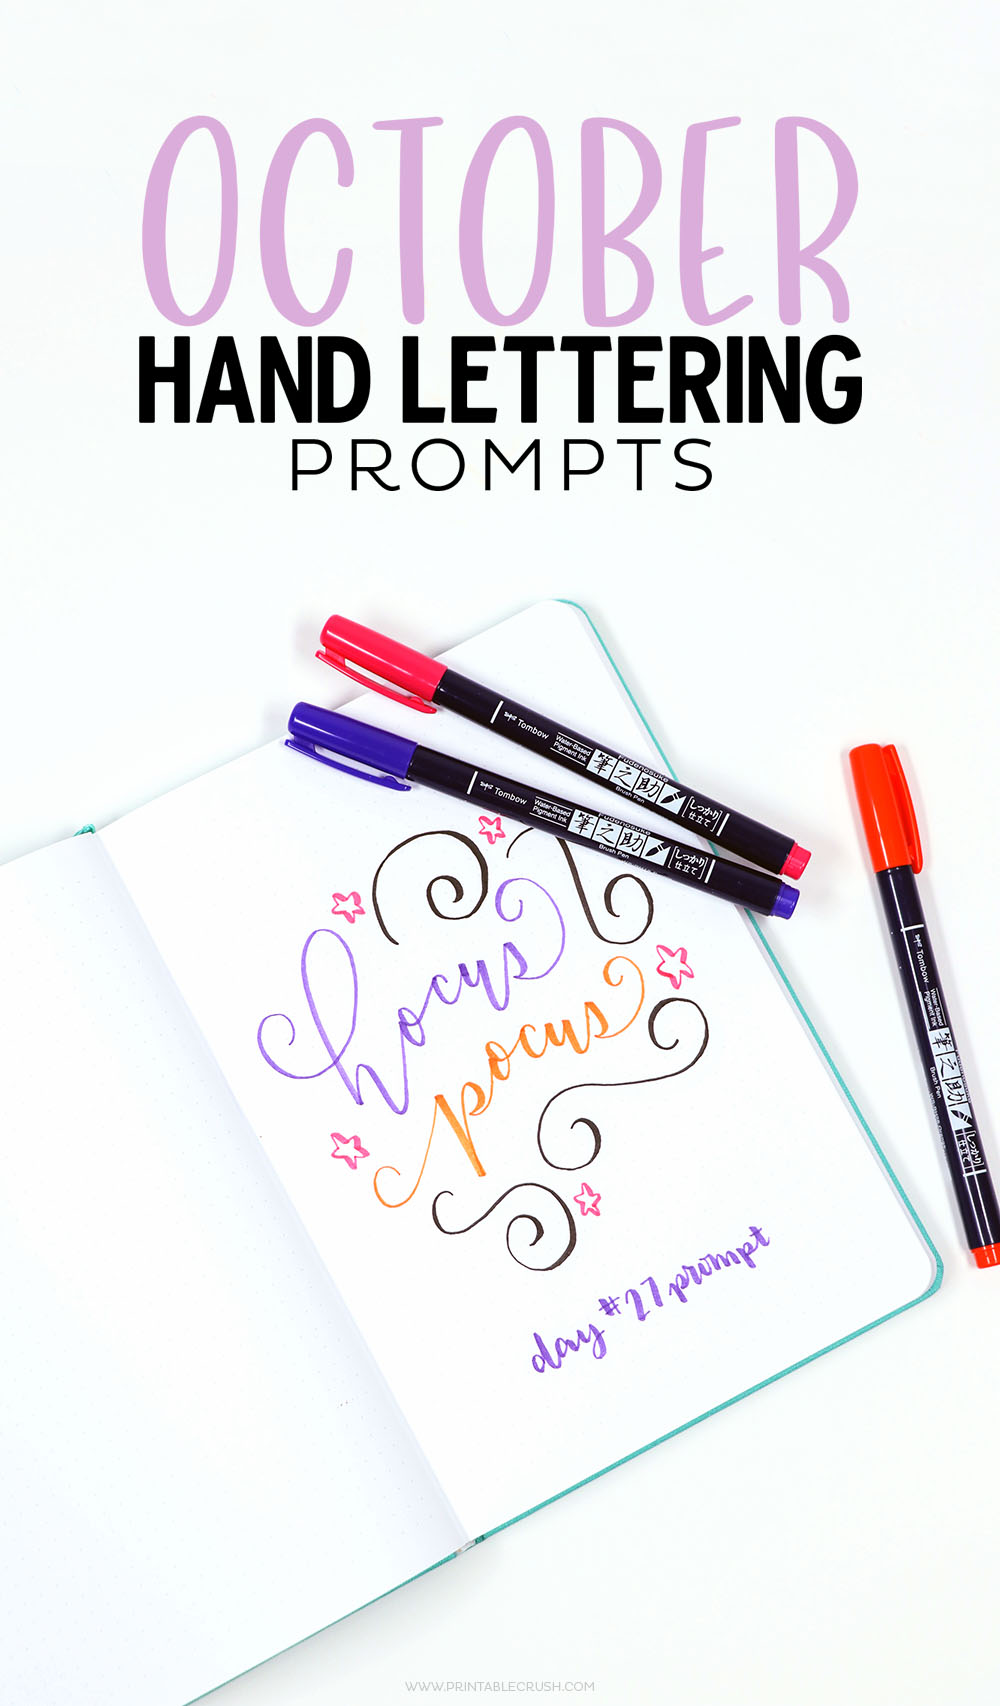 Download this FREE October Hand lettering prompts and worksheet so you can practice lettering daily!